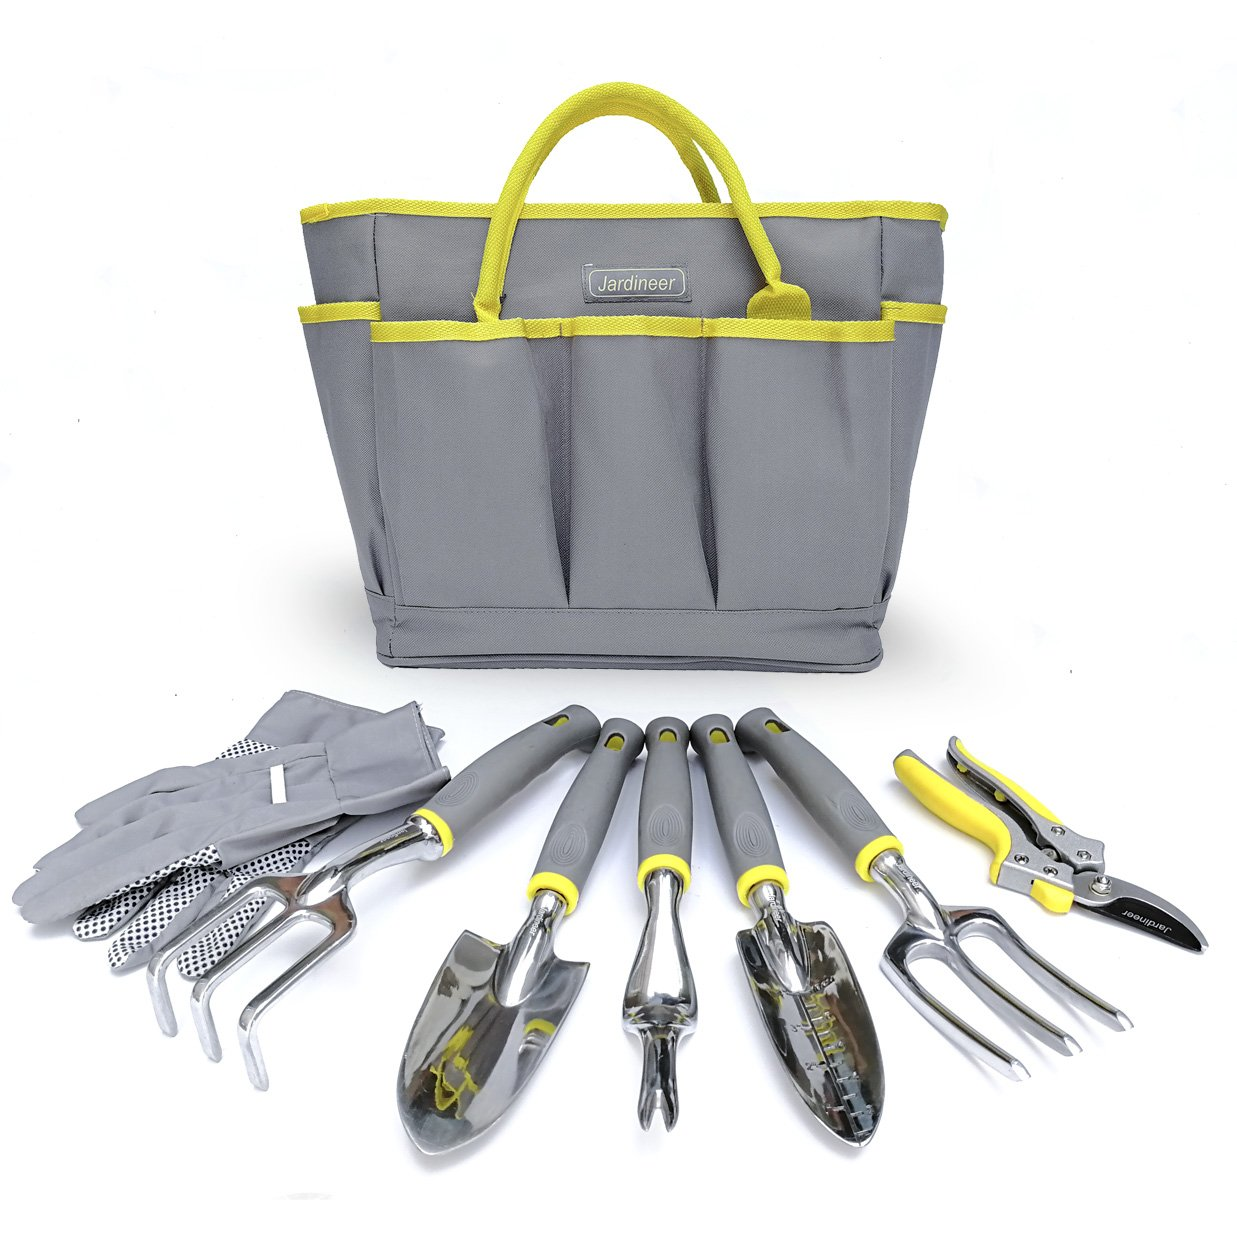 Garden Tools set with Garden Gloves and Tool Bag, 8 Piece Heavy Duty Gardening tools with Trowel and Pruning Shears, Garden Gifts for Women&Men by Jardineer